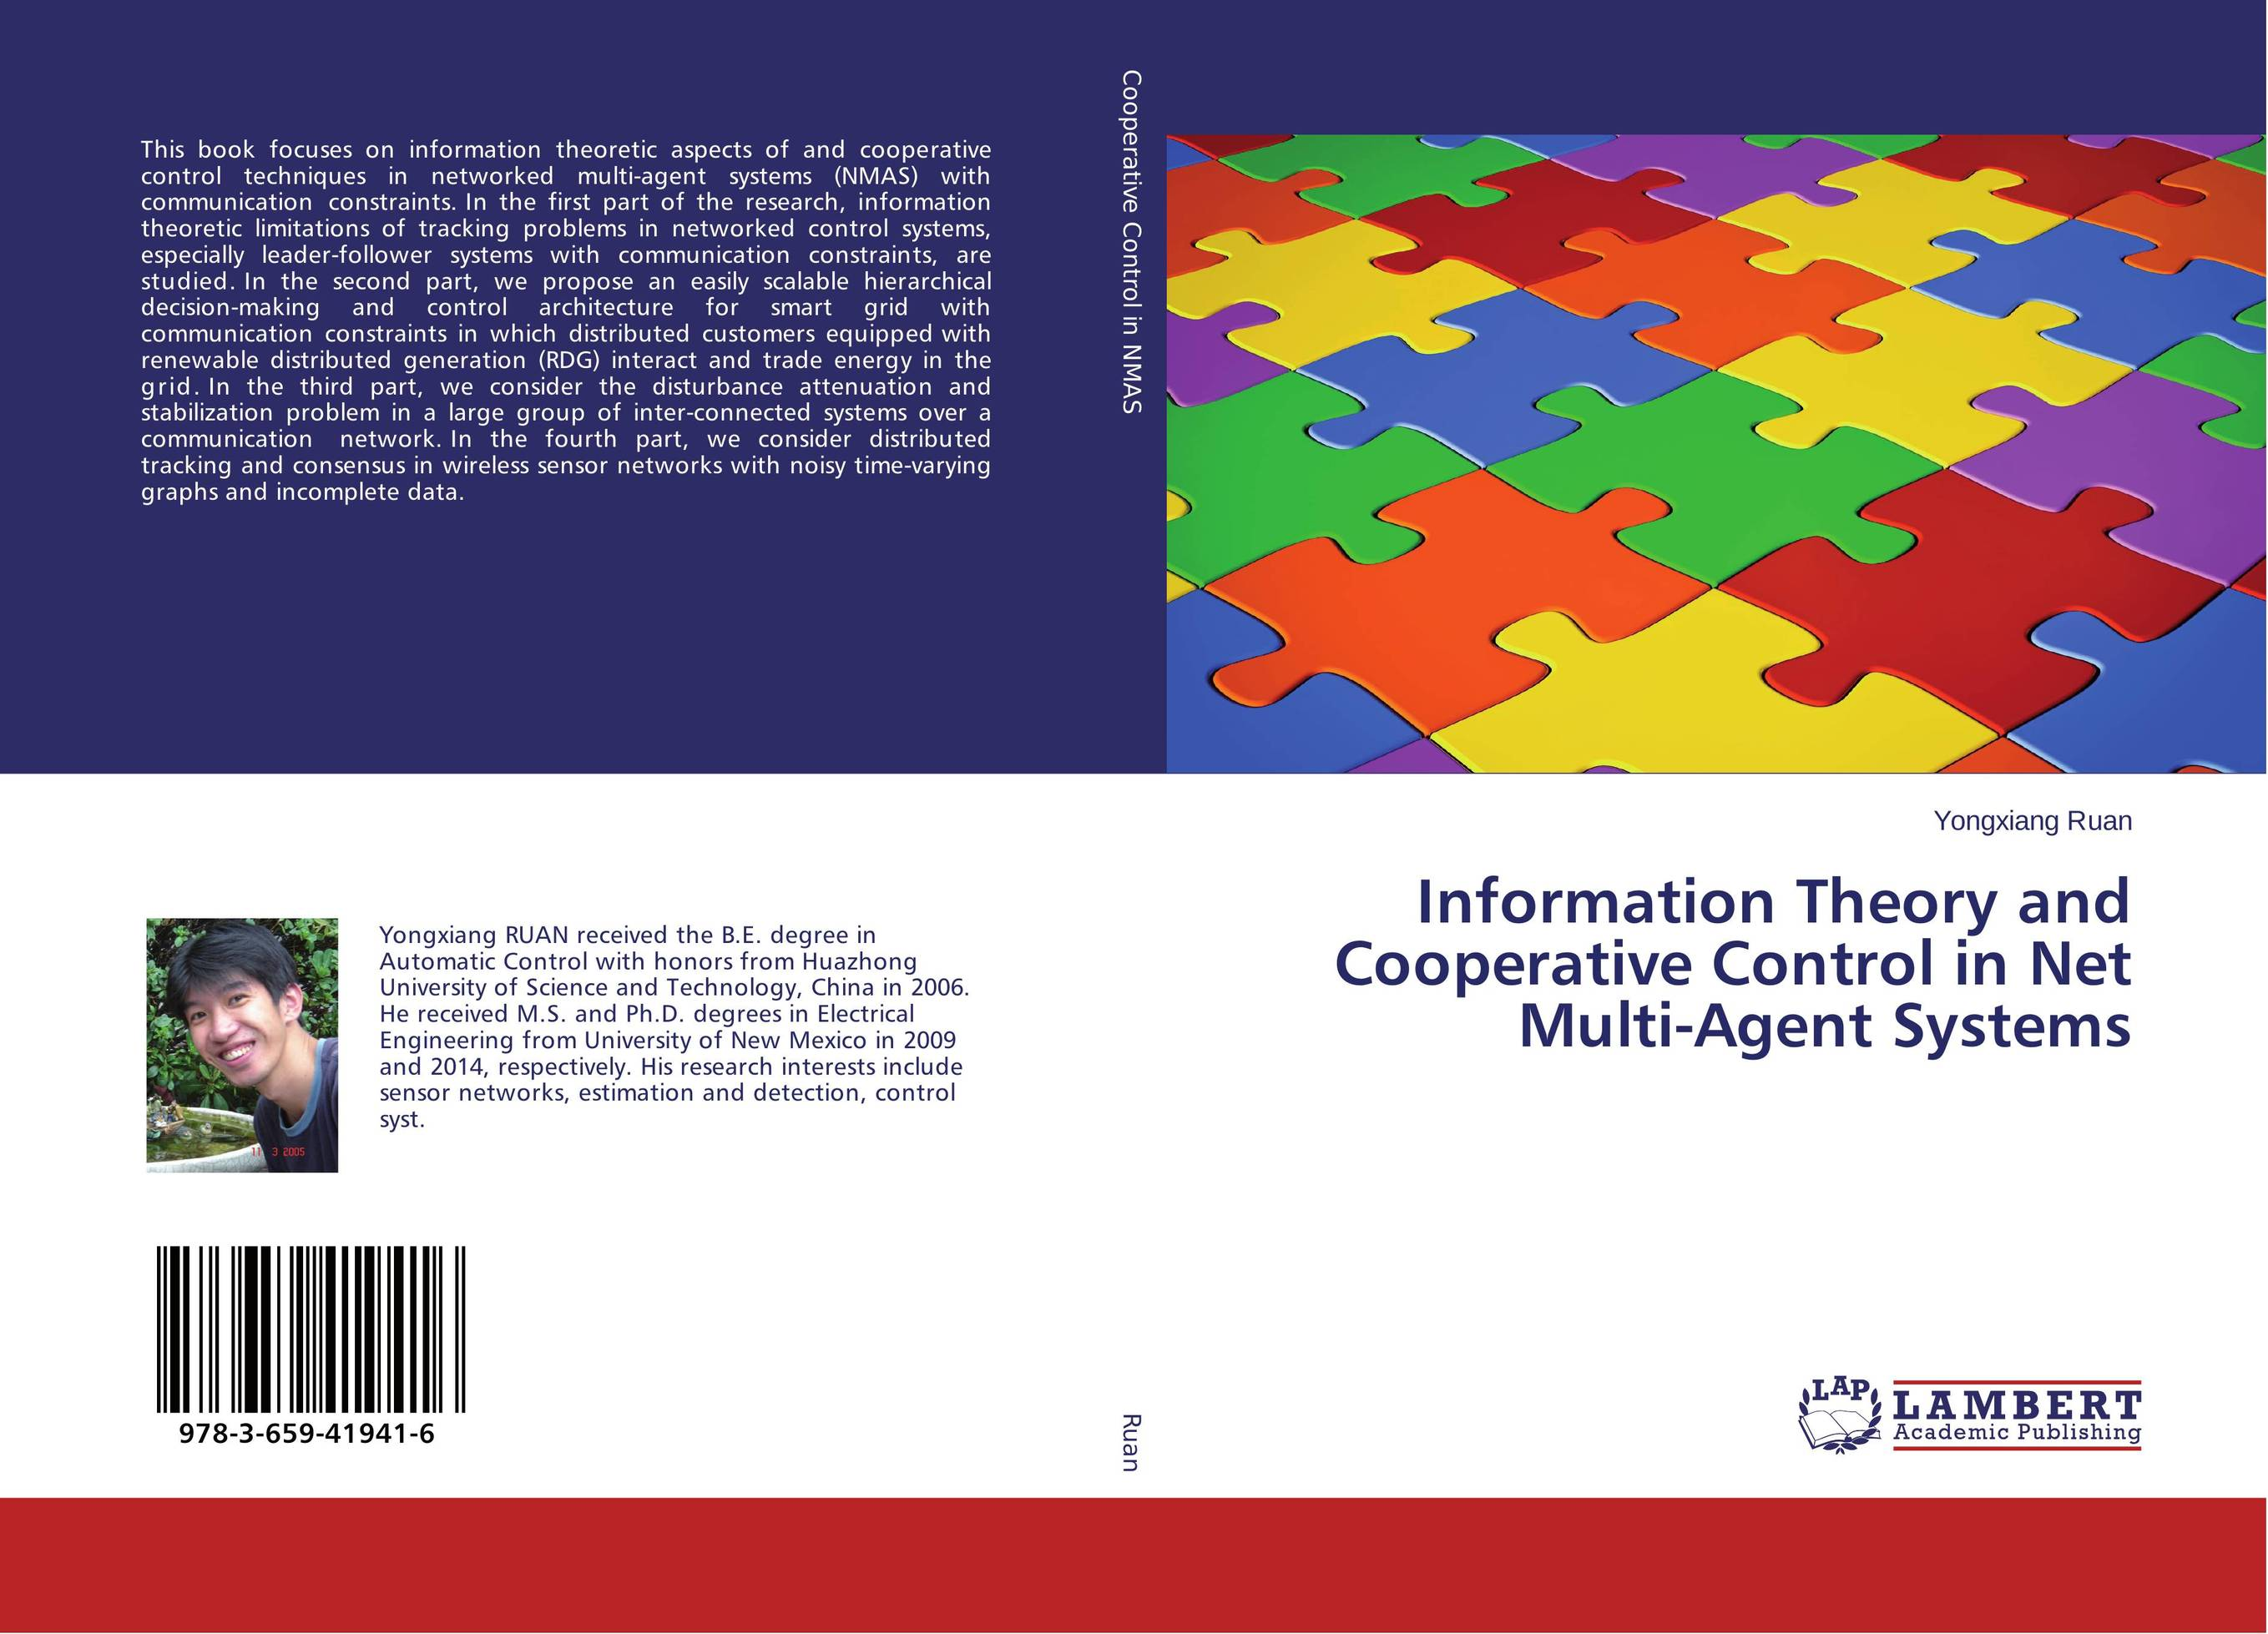 Information Theory and Cooperative Control in Net Multi-Agent Systems catalog 2003 information systems and decision sciences cat alog